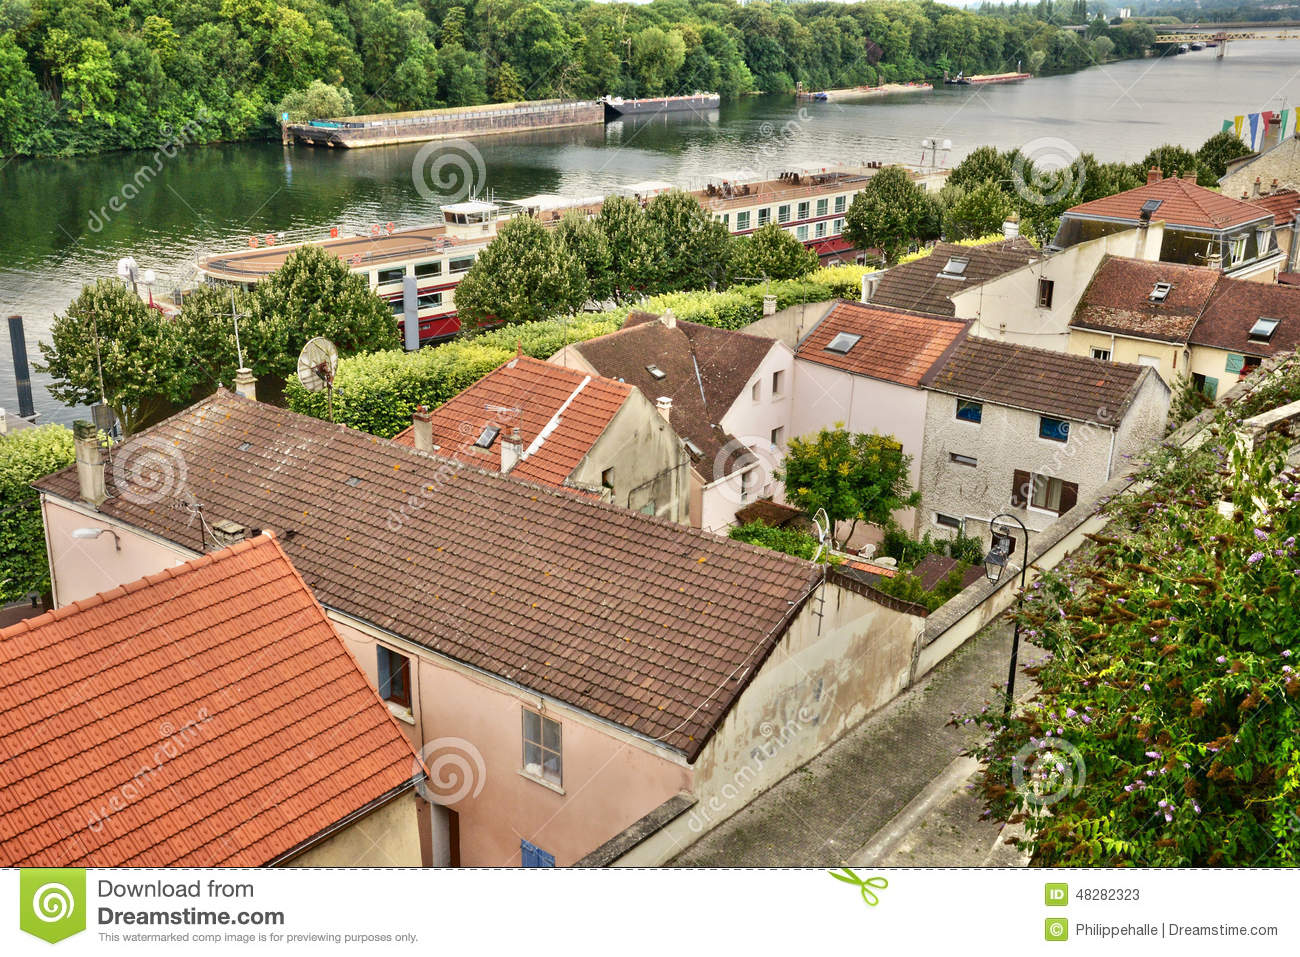 france the picturesque city of conflans sainte honorine editorial stock photo image 48282323. Black Bedroom Furniture Sets. Home Design Ideas